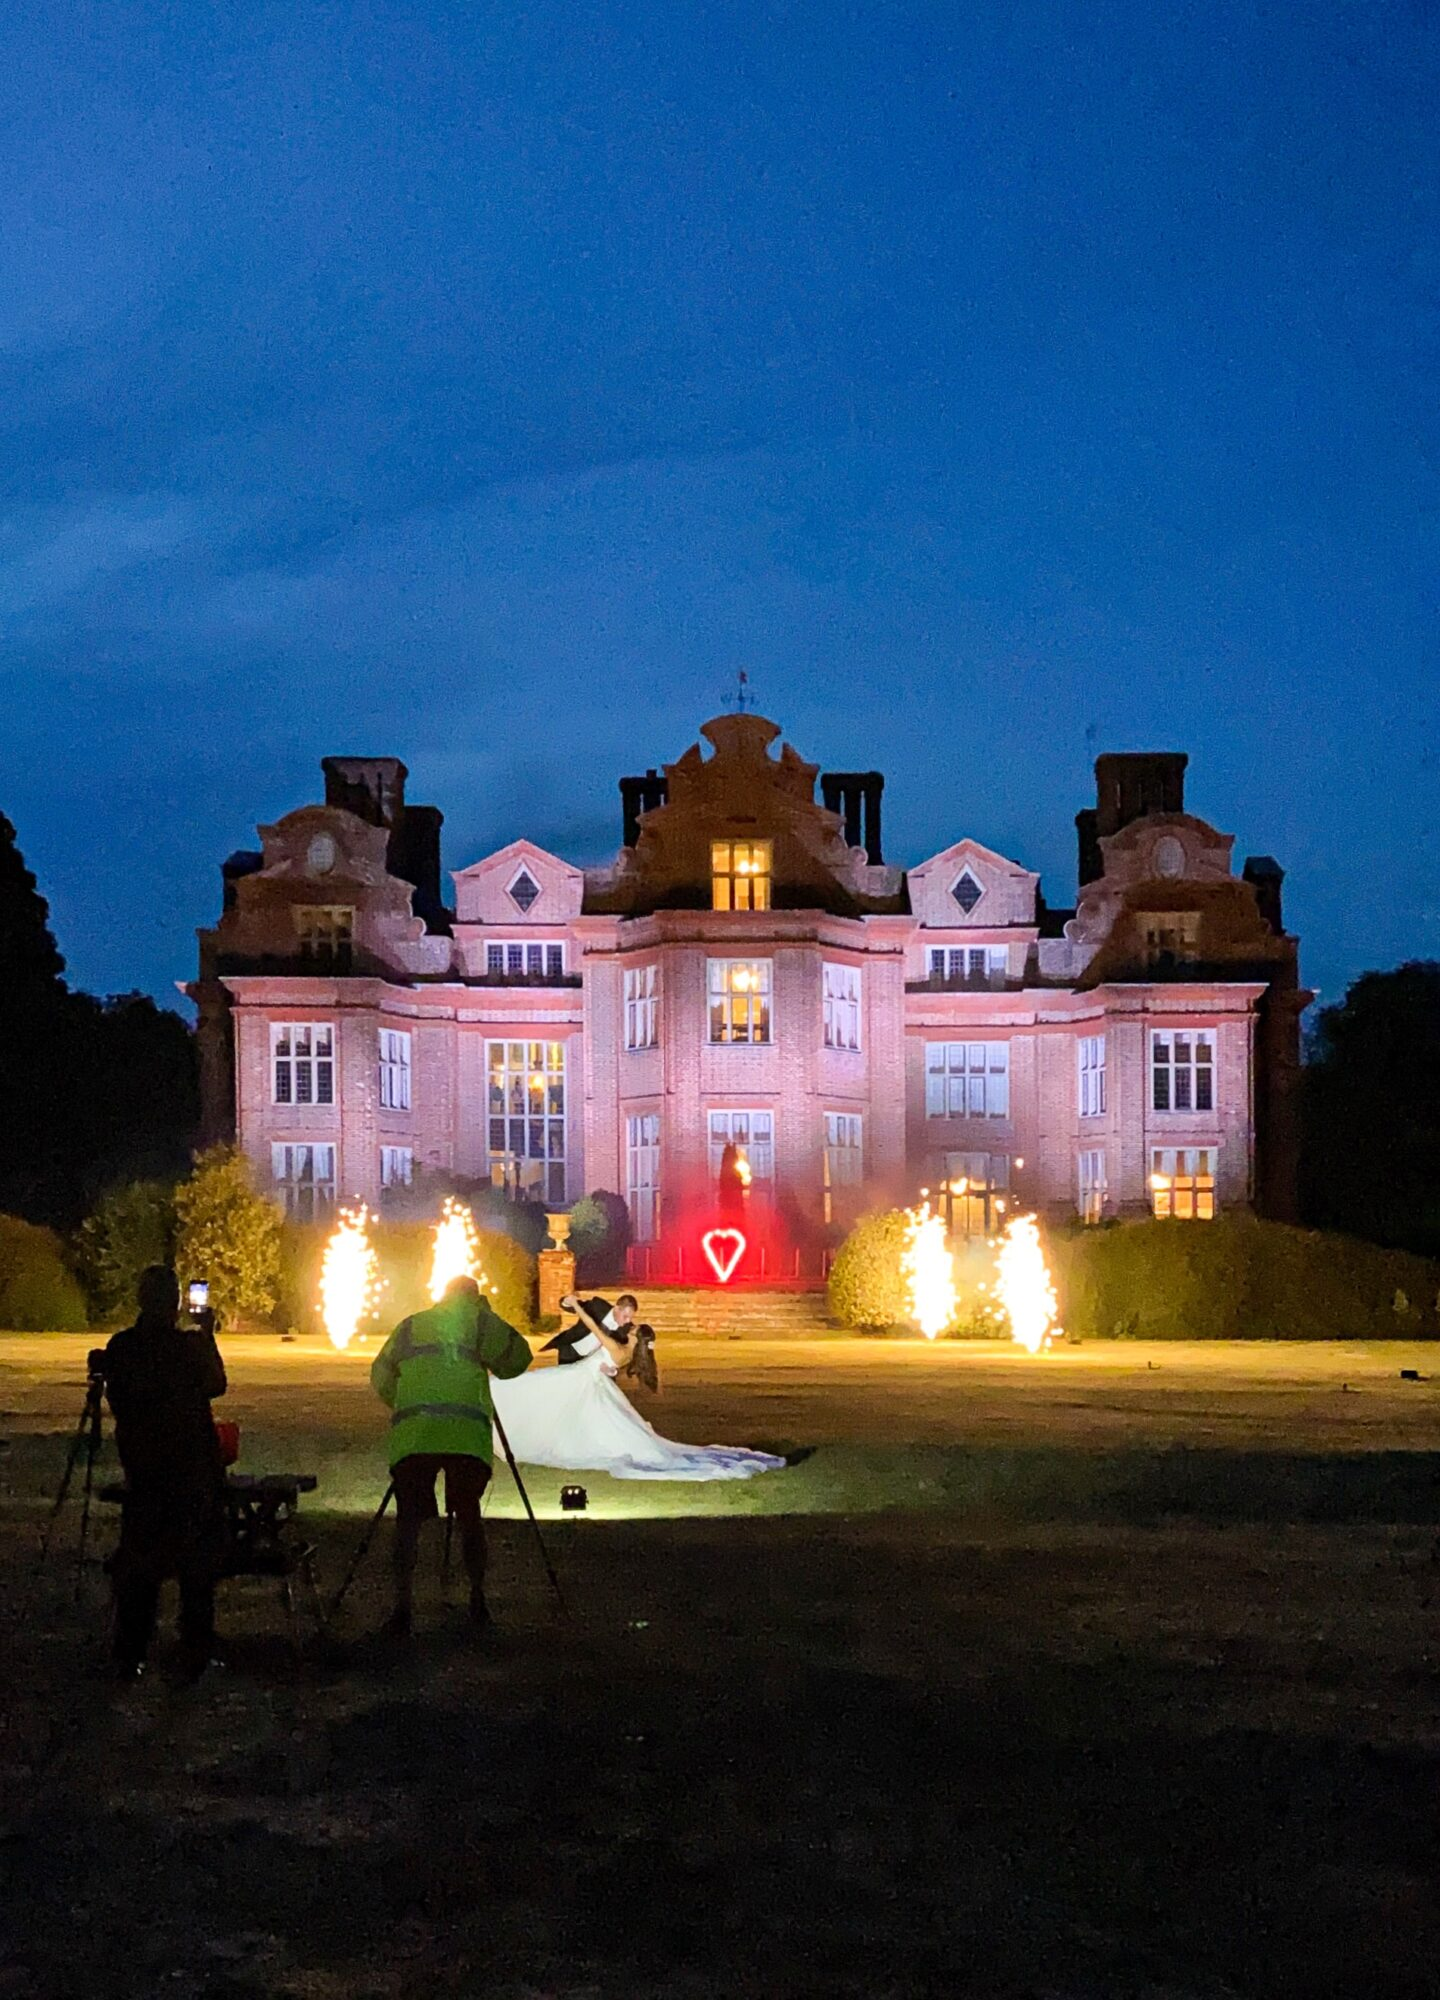 Broome Park Hotel photoshoot